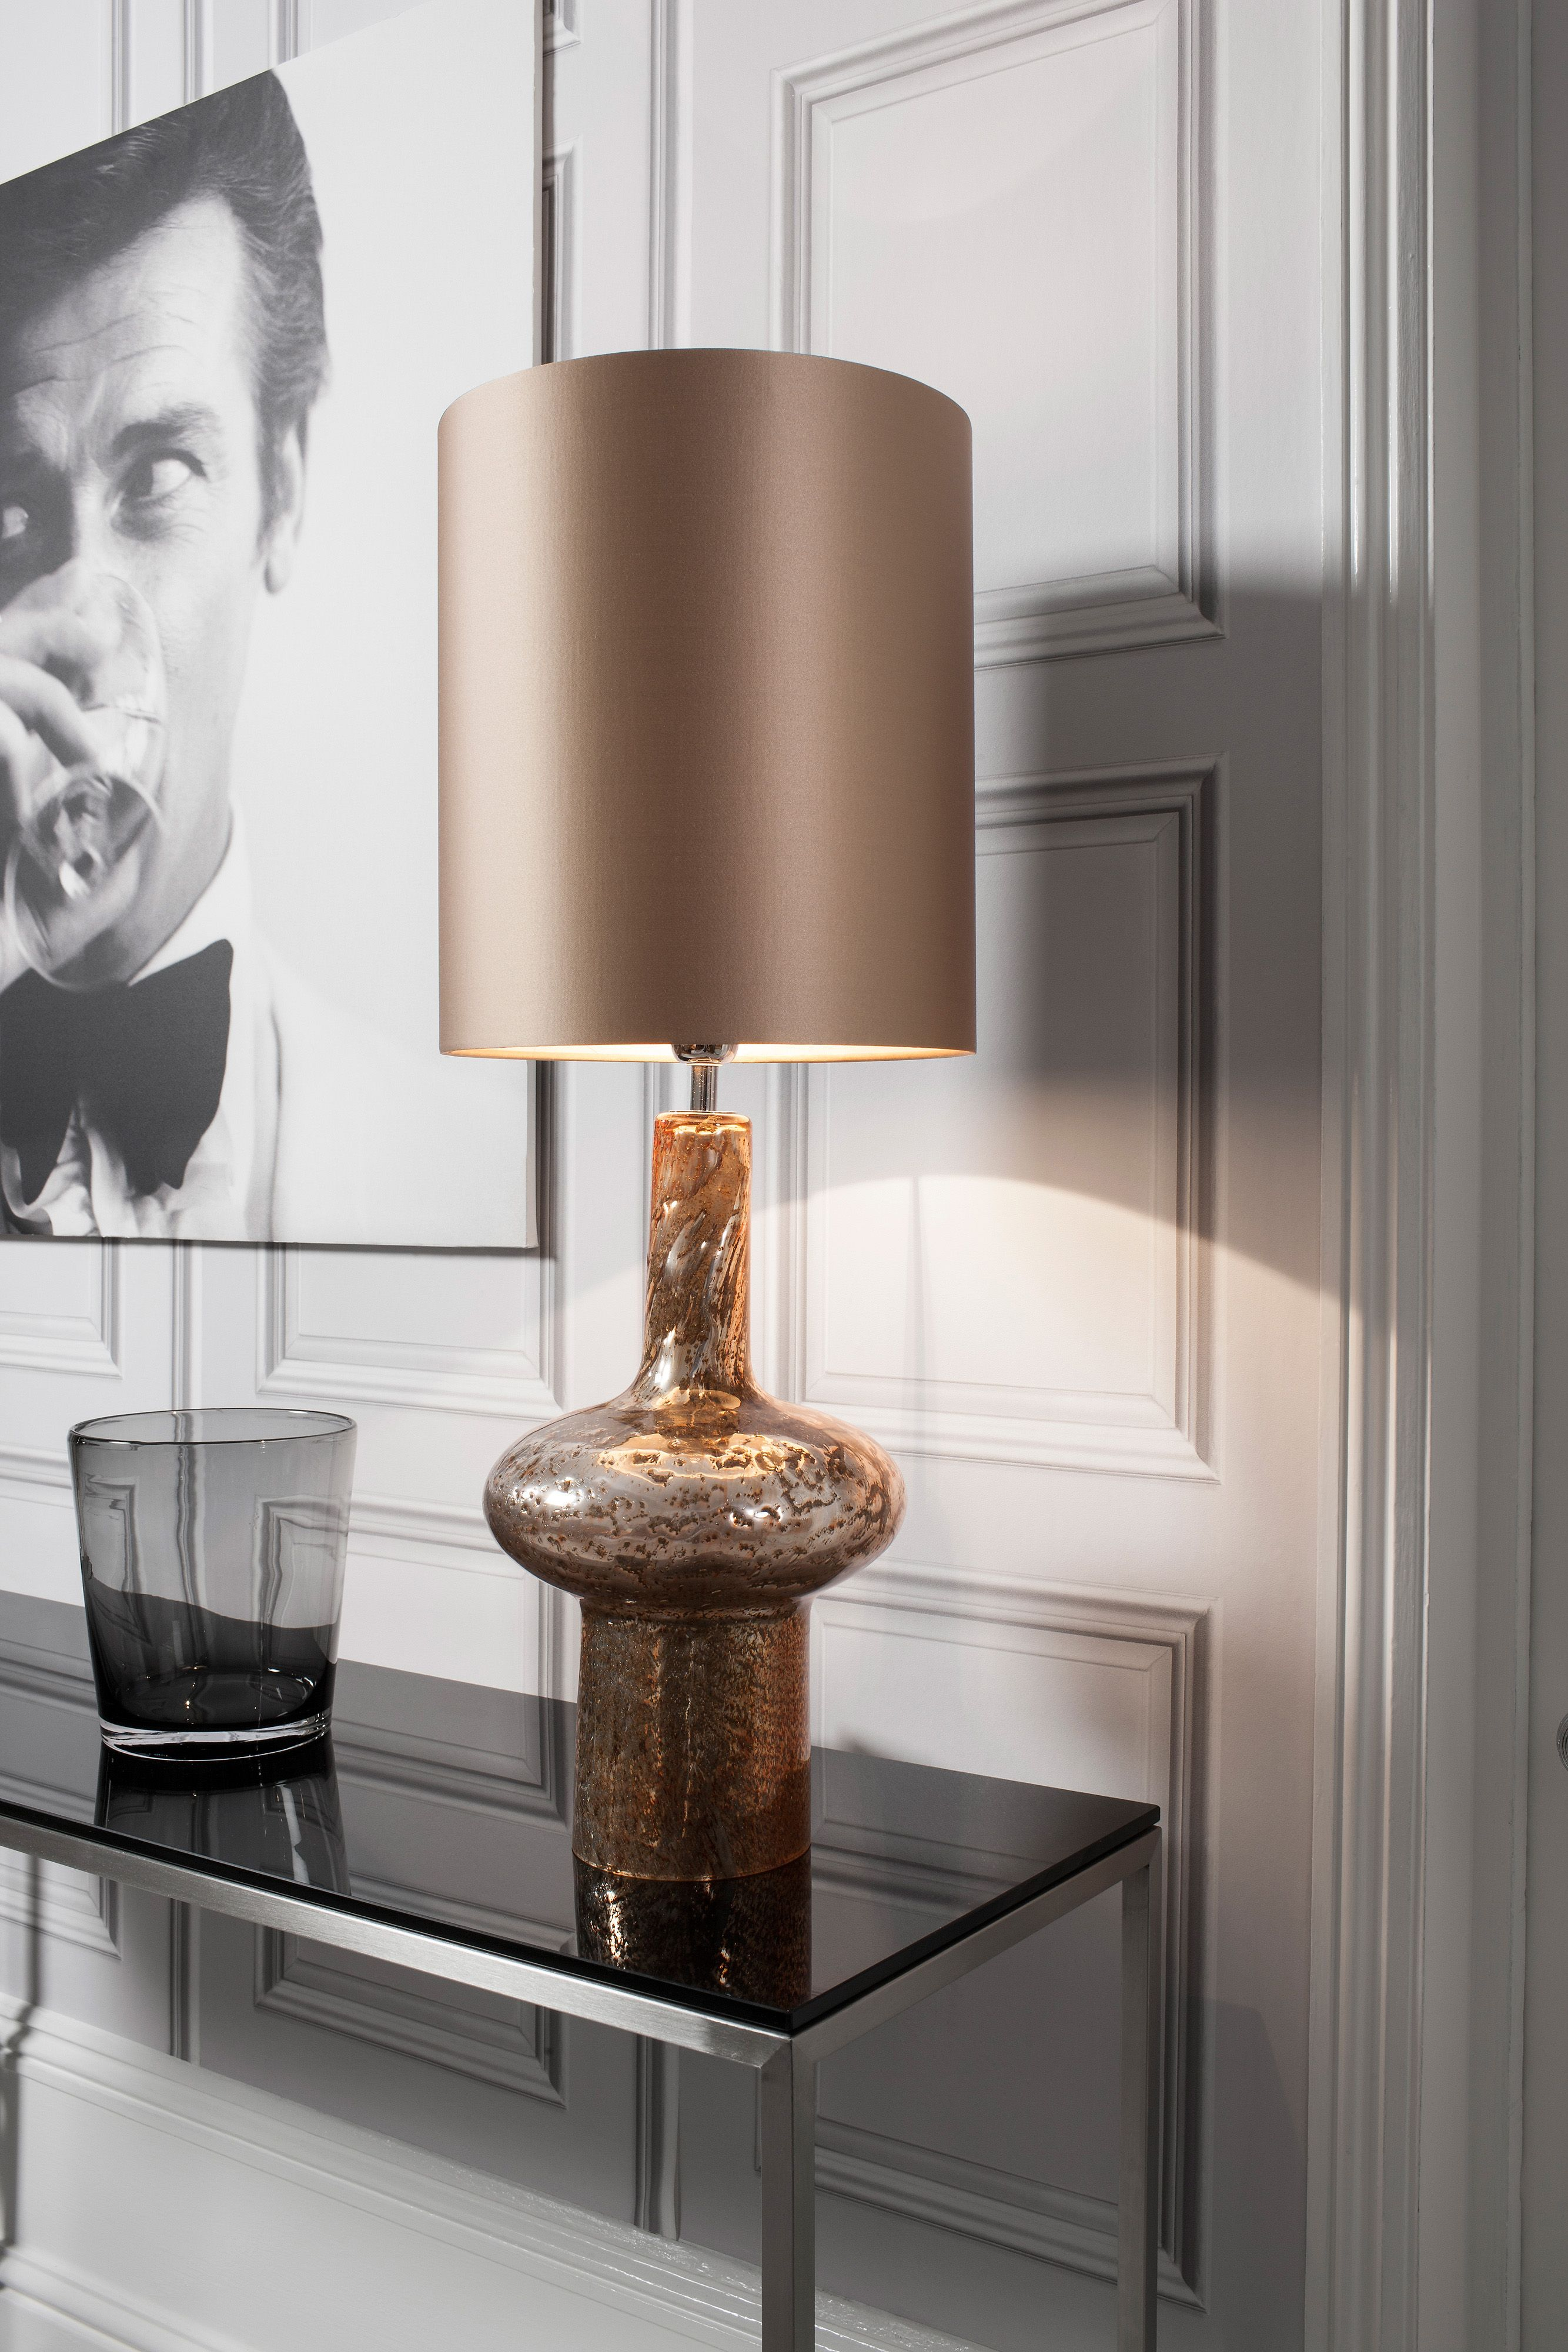 Glass table texture - Verdi Gold Table Lamp Featuring Mould Blown Glass With Volcanic Frit Lava And Marble Textures